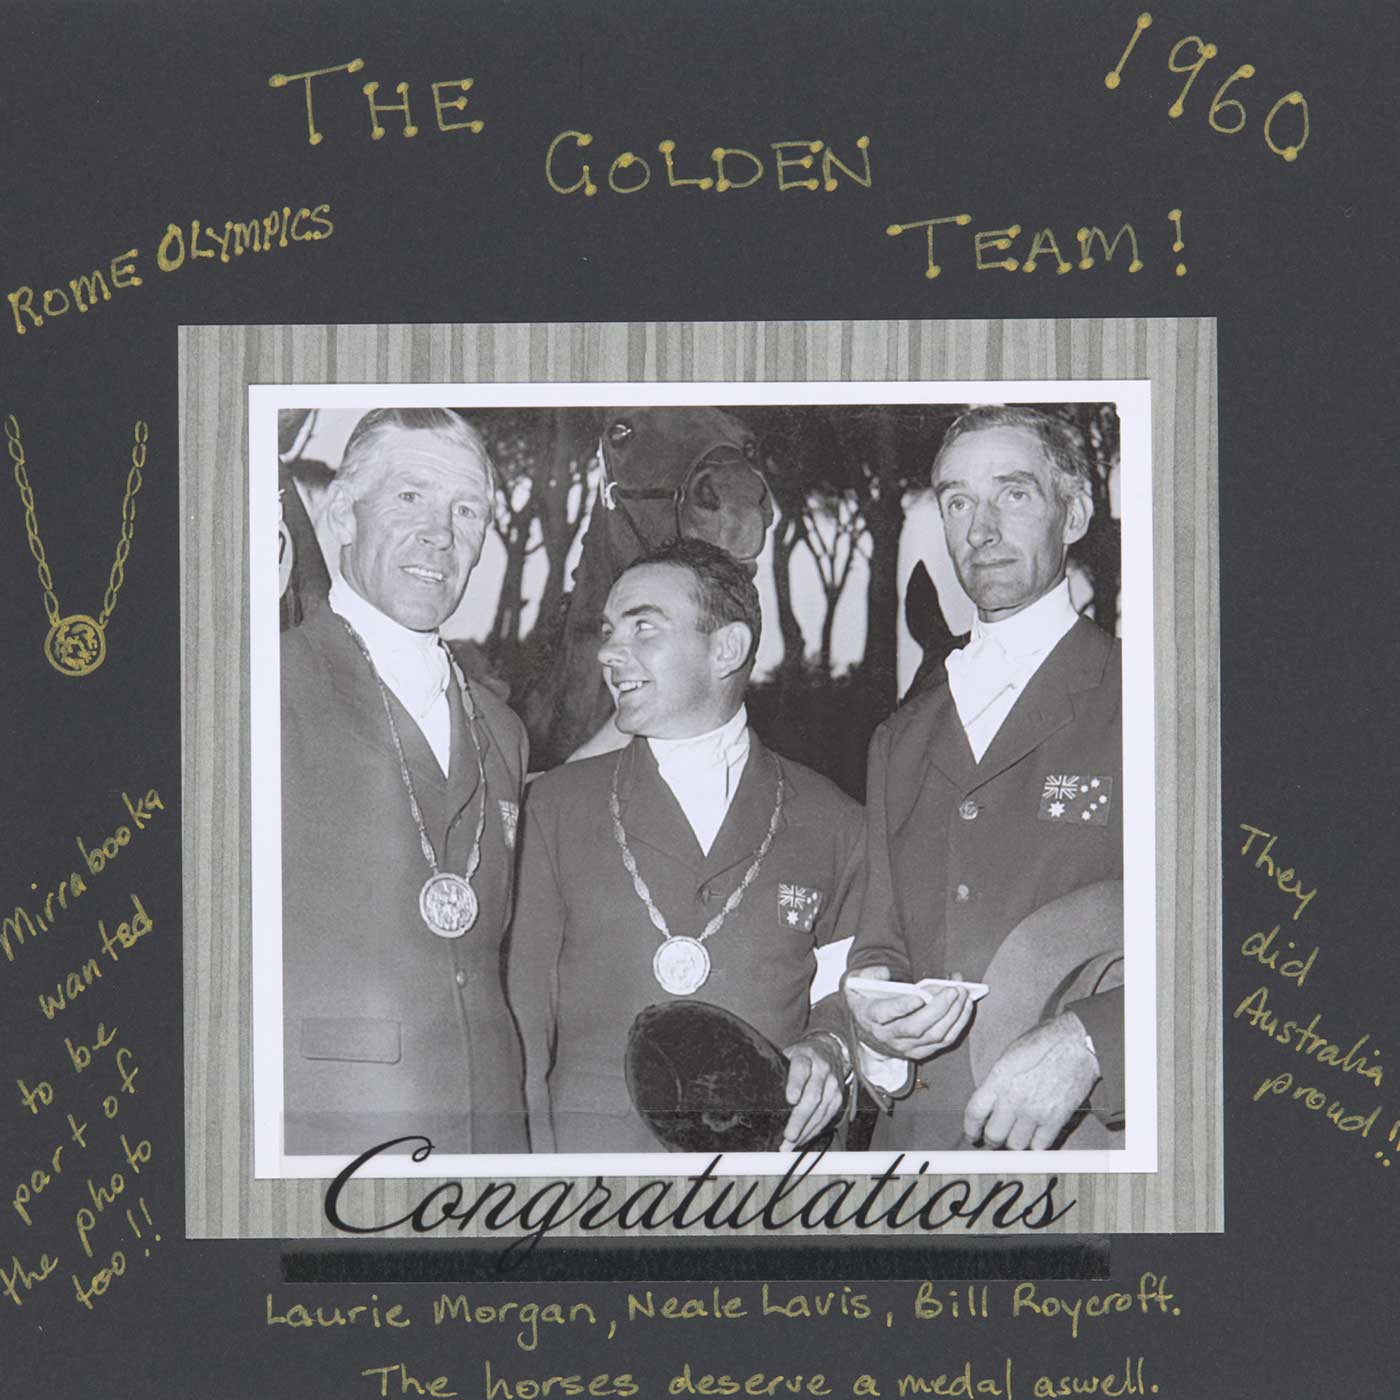 Page from a photo album titled 'The Golden Team' with an image of three men with medals. - click to view larger image